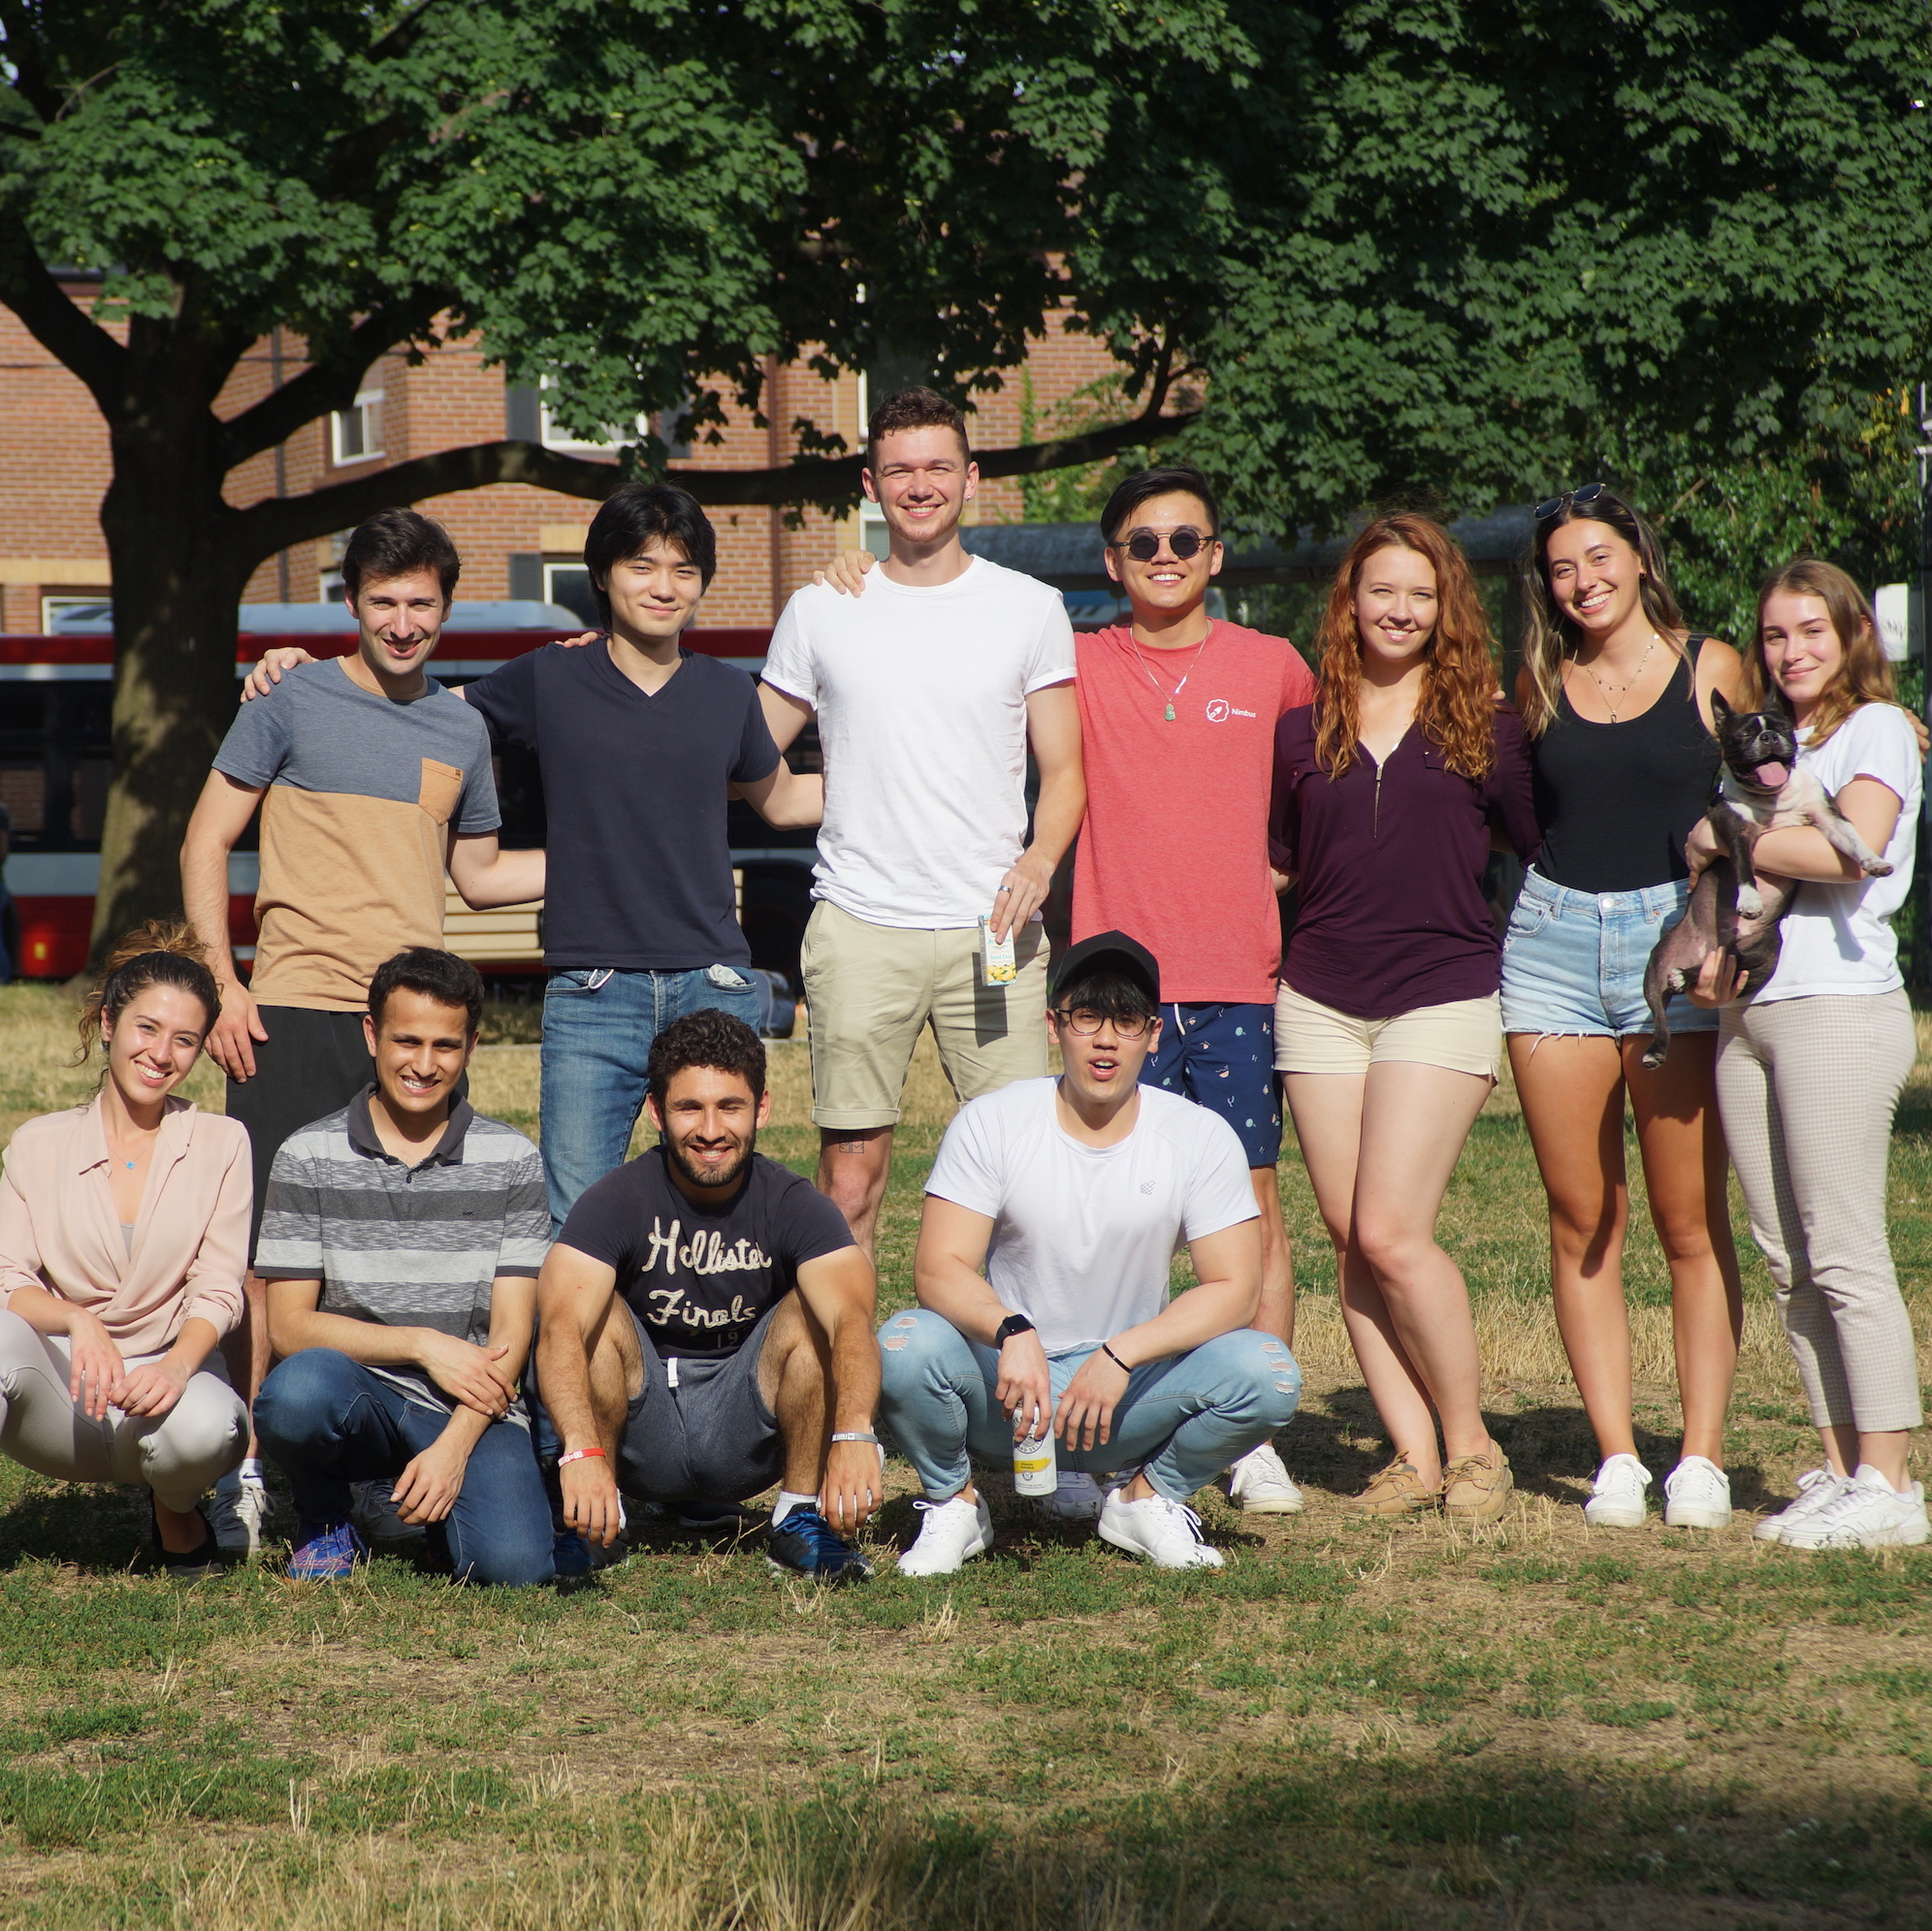 The Nimbus team stands arm in arm, smiling for the camera